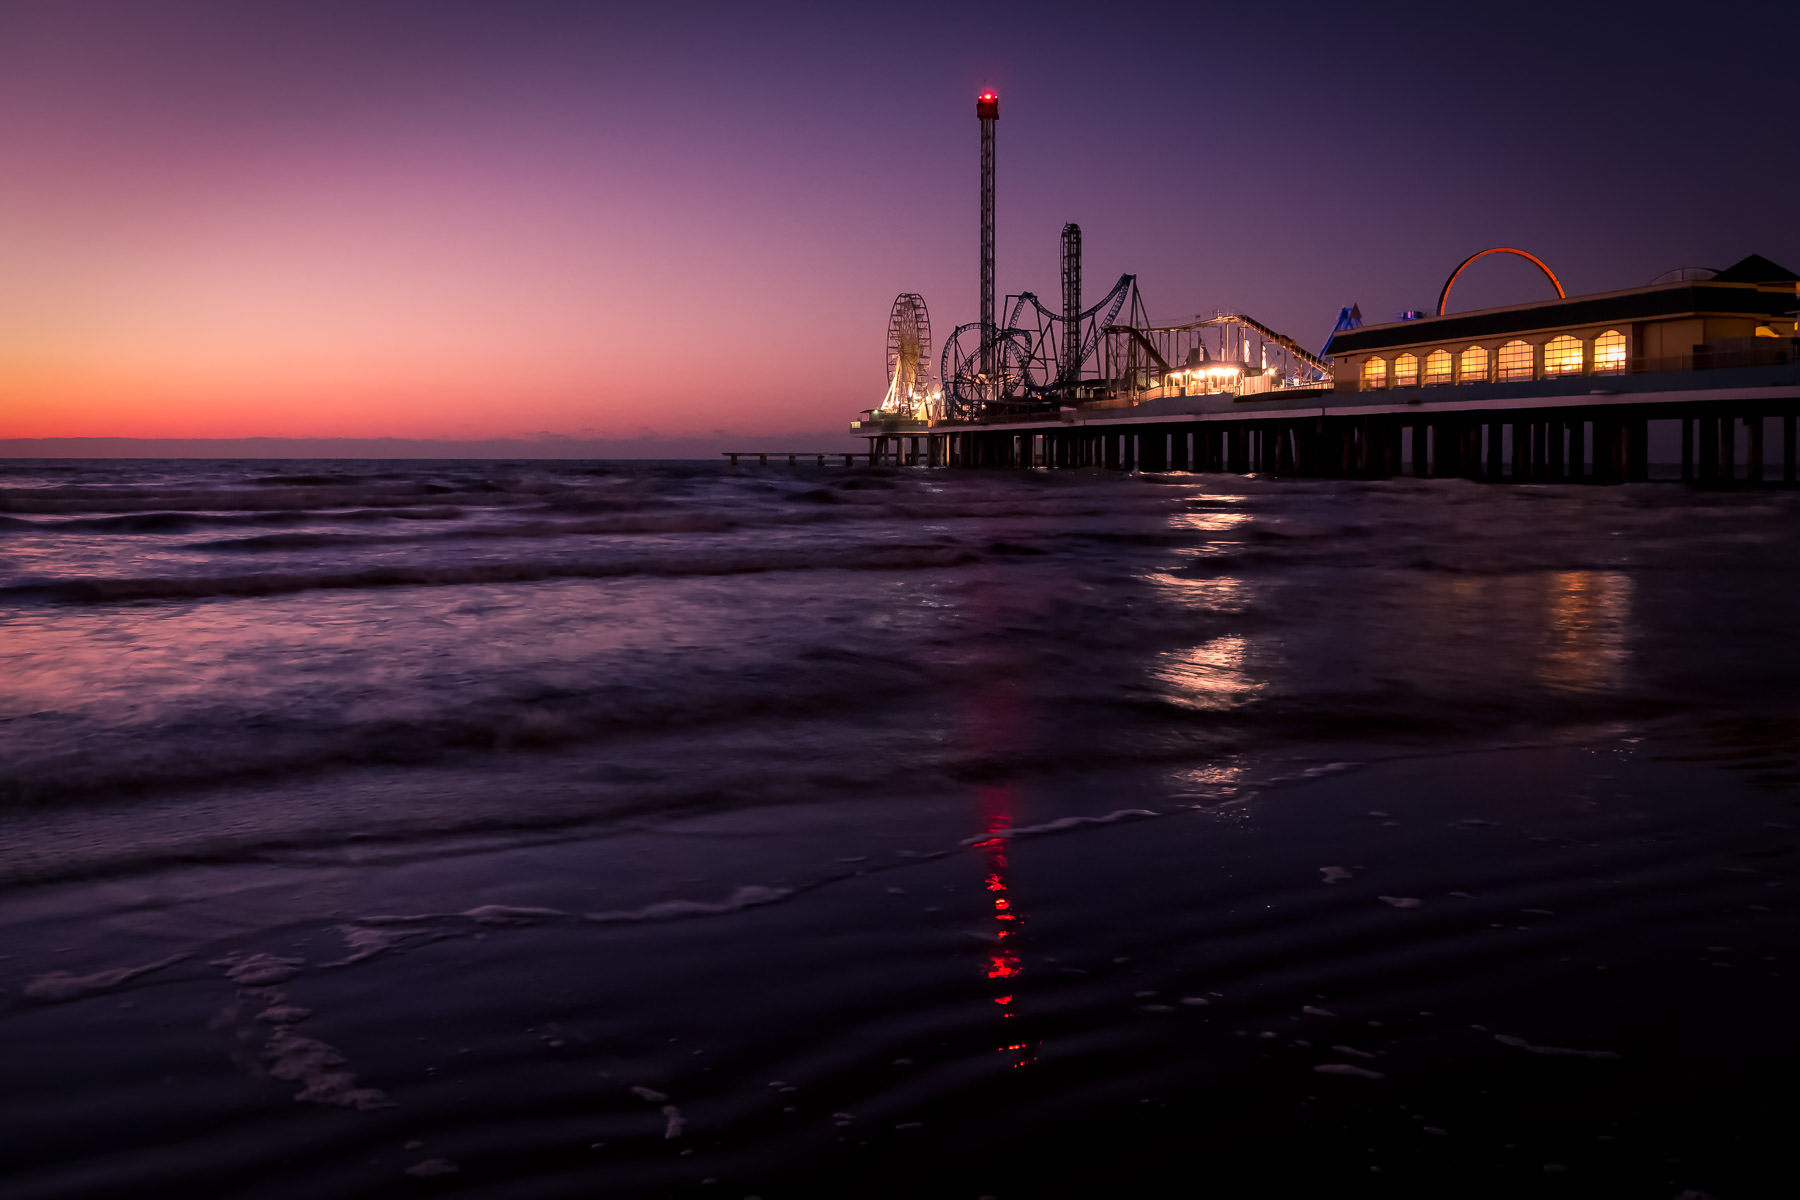 The first light of the day illuminates the Historic Pleasure Pier in Galveston, Texas.